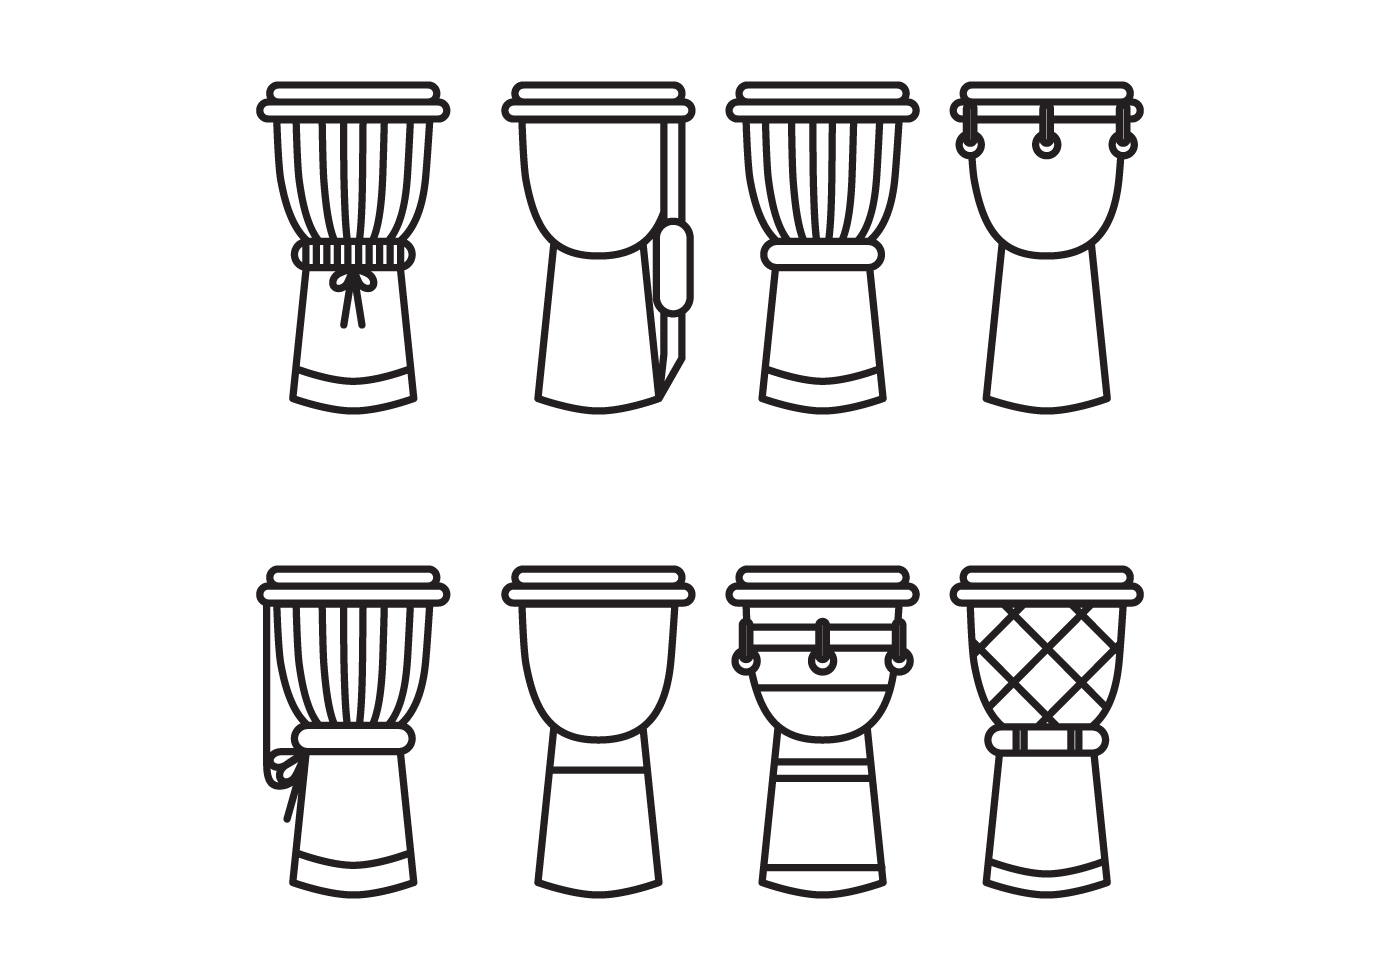 Black & White Djembes - Download Free Vector Art, Stock ...